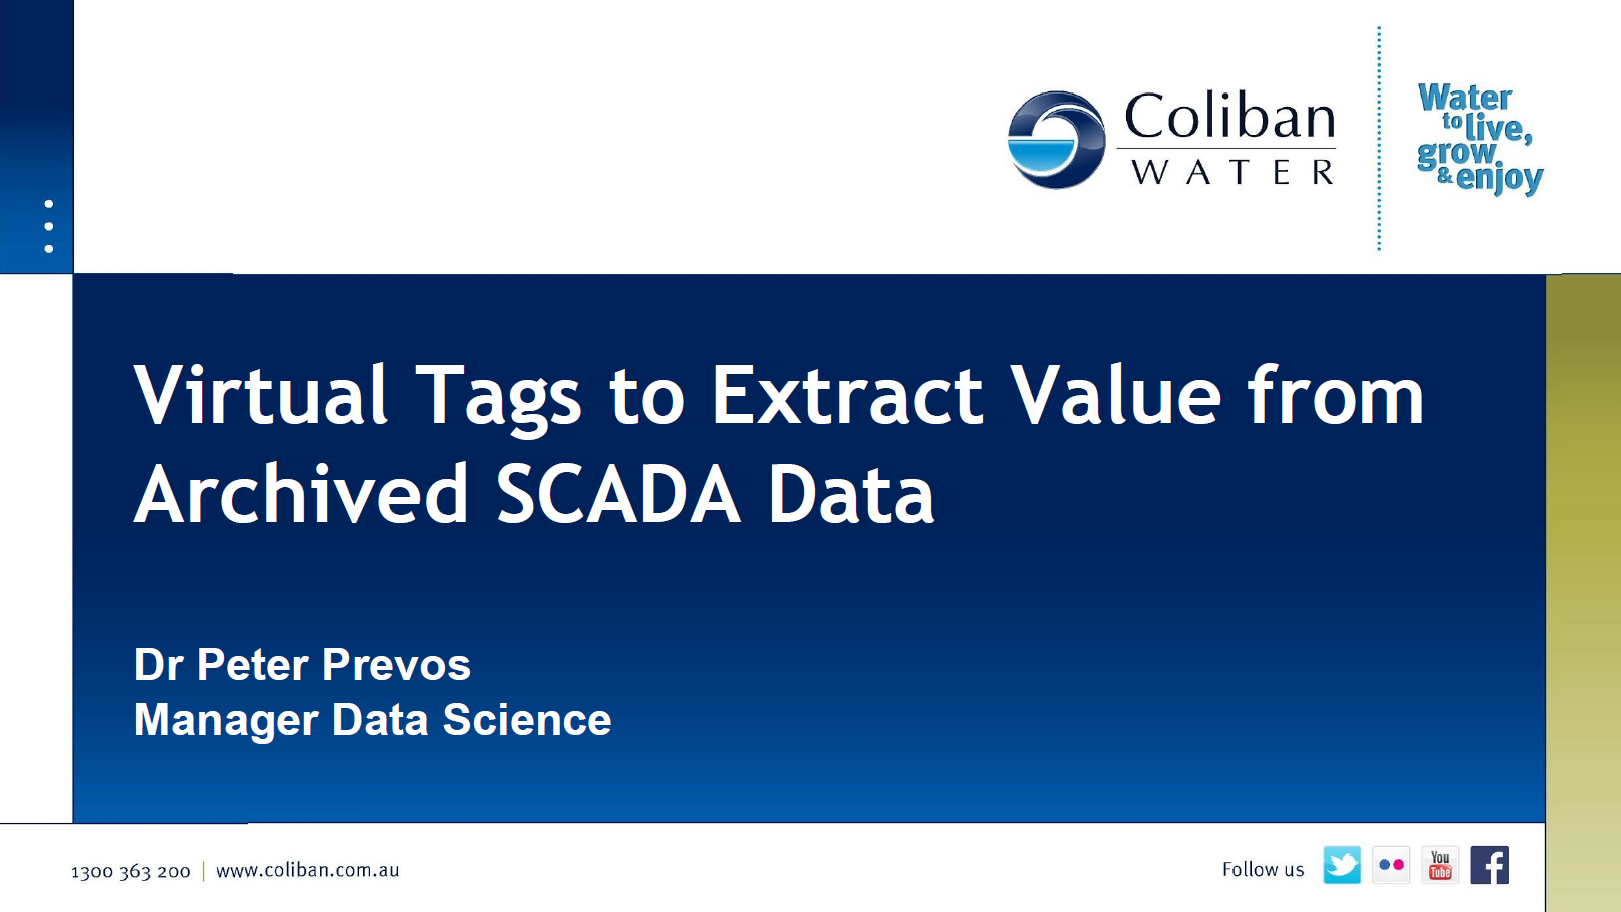 Virtual Tags to Extract Value from Archived SCADA Data